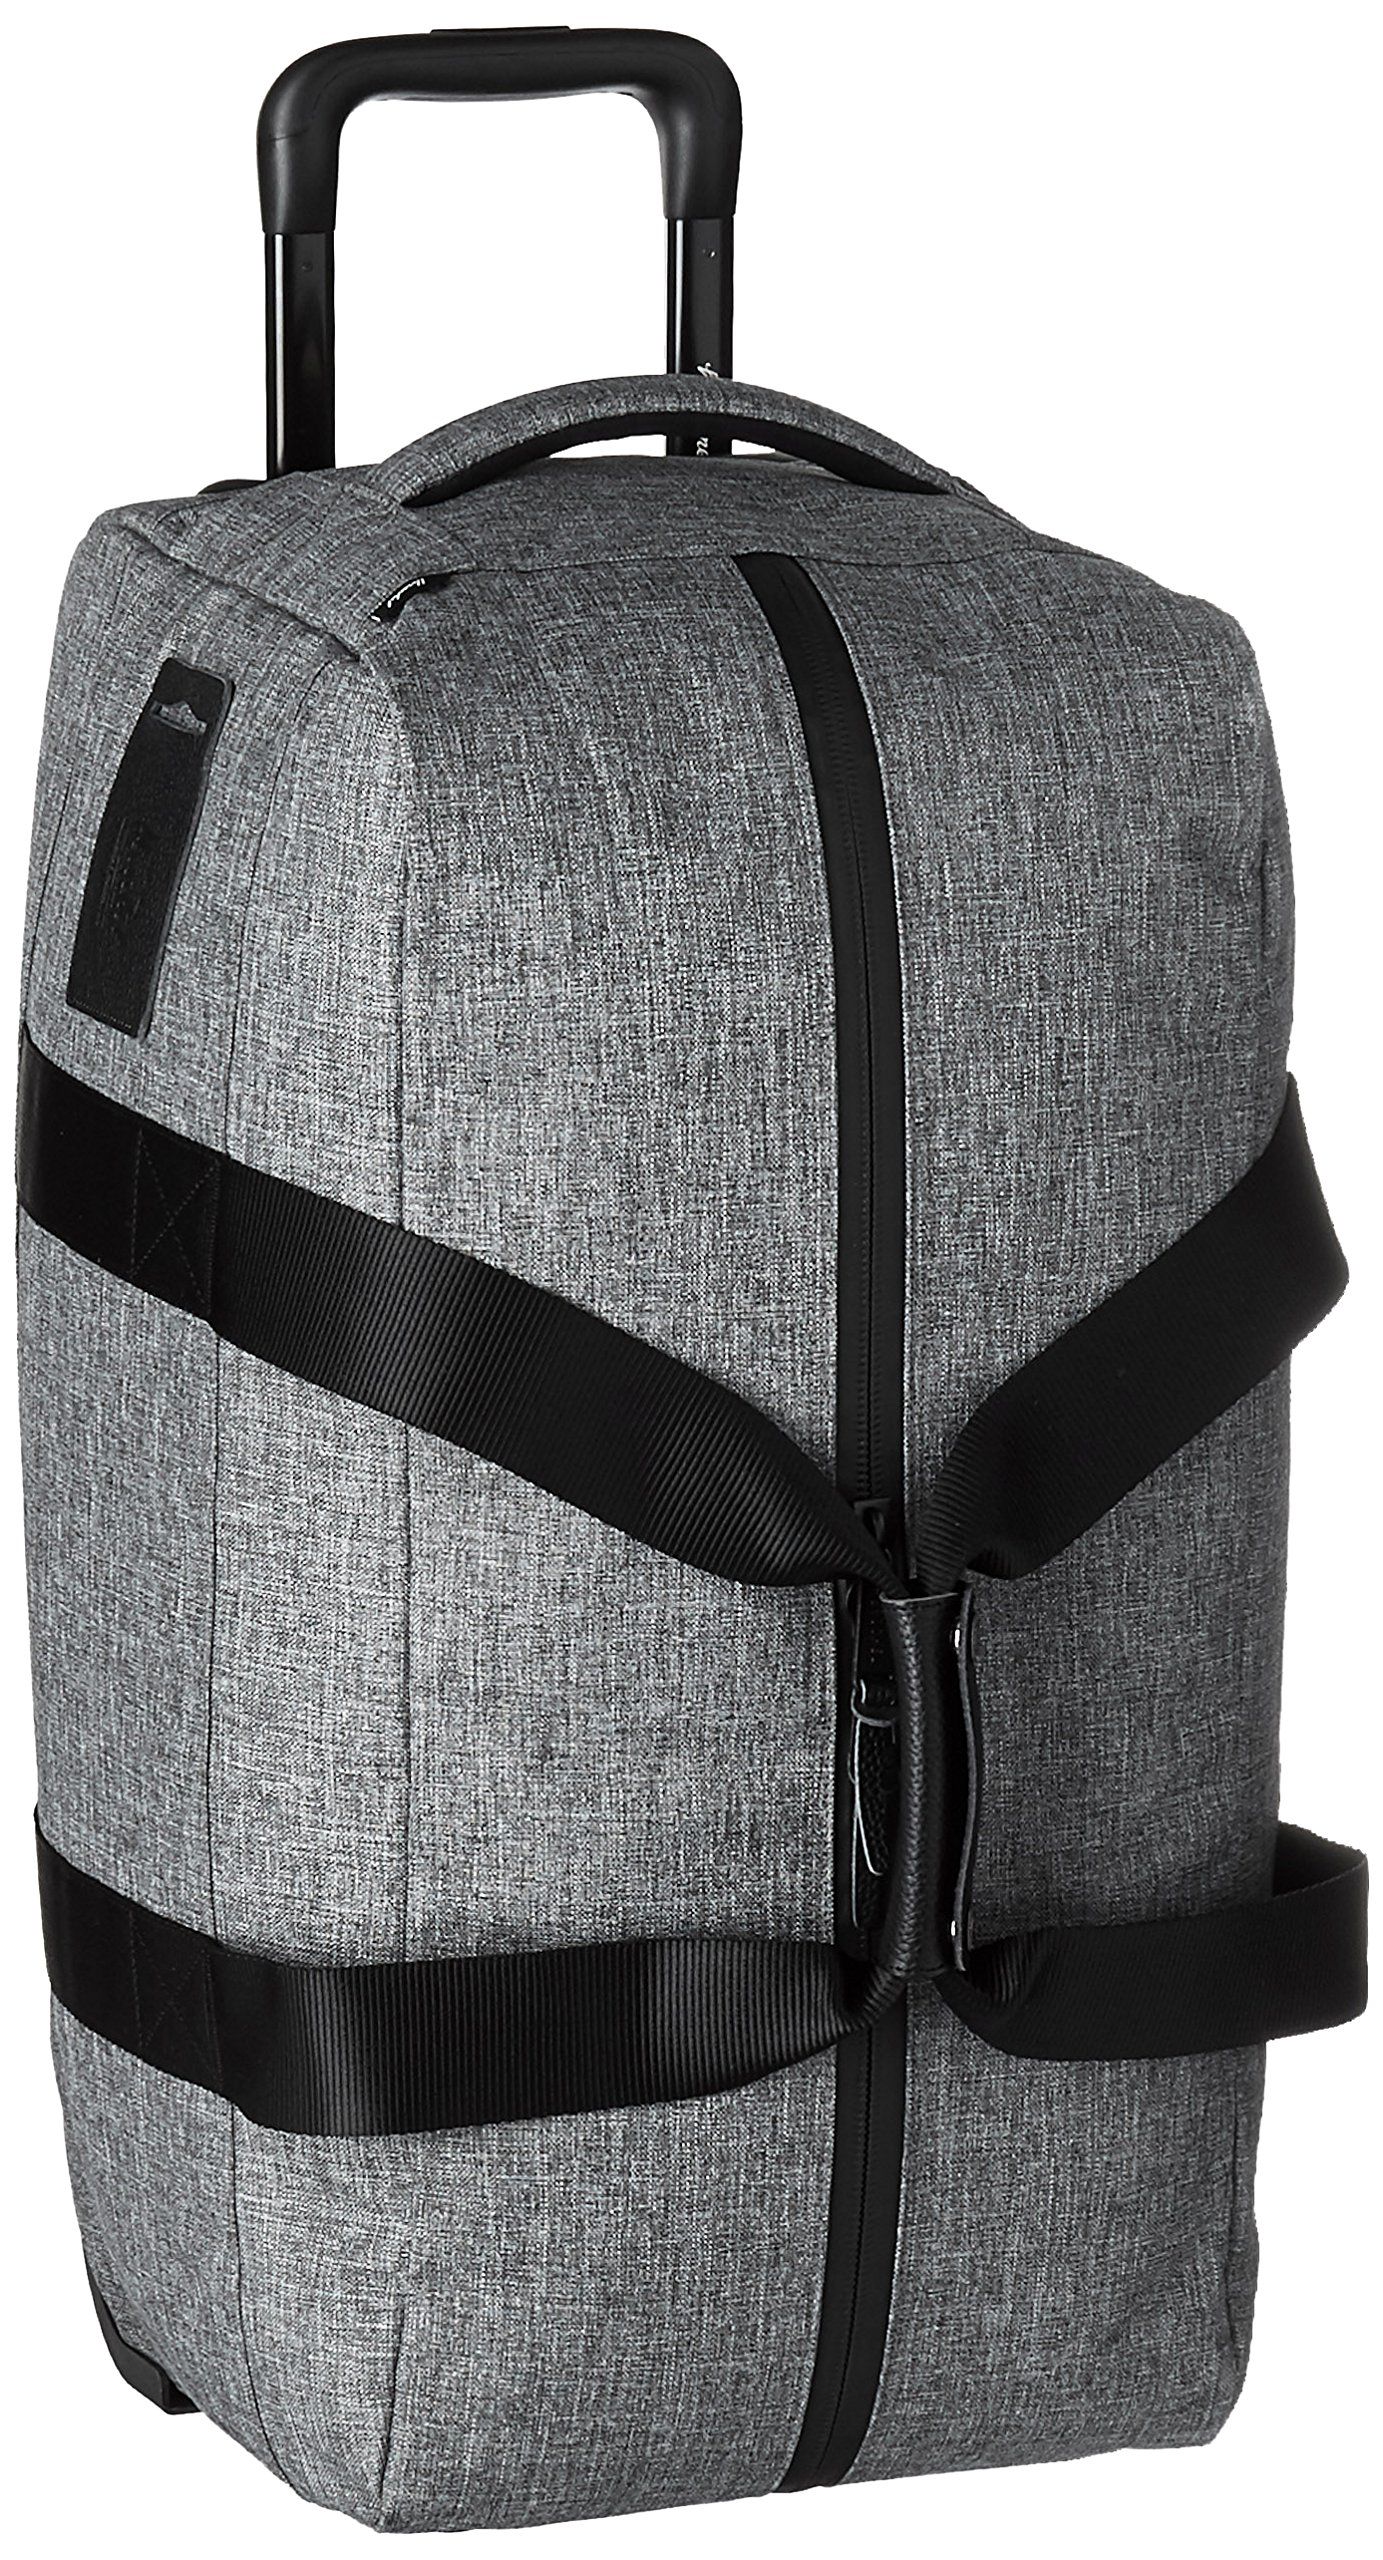 Herschel Supply Co. Wheelie Outfitter Luggage, Raven Crosshatch by Herschel Supply Co.